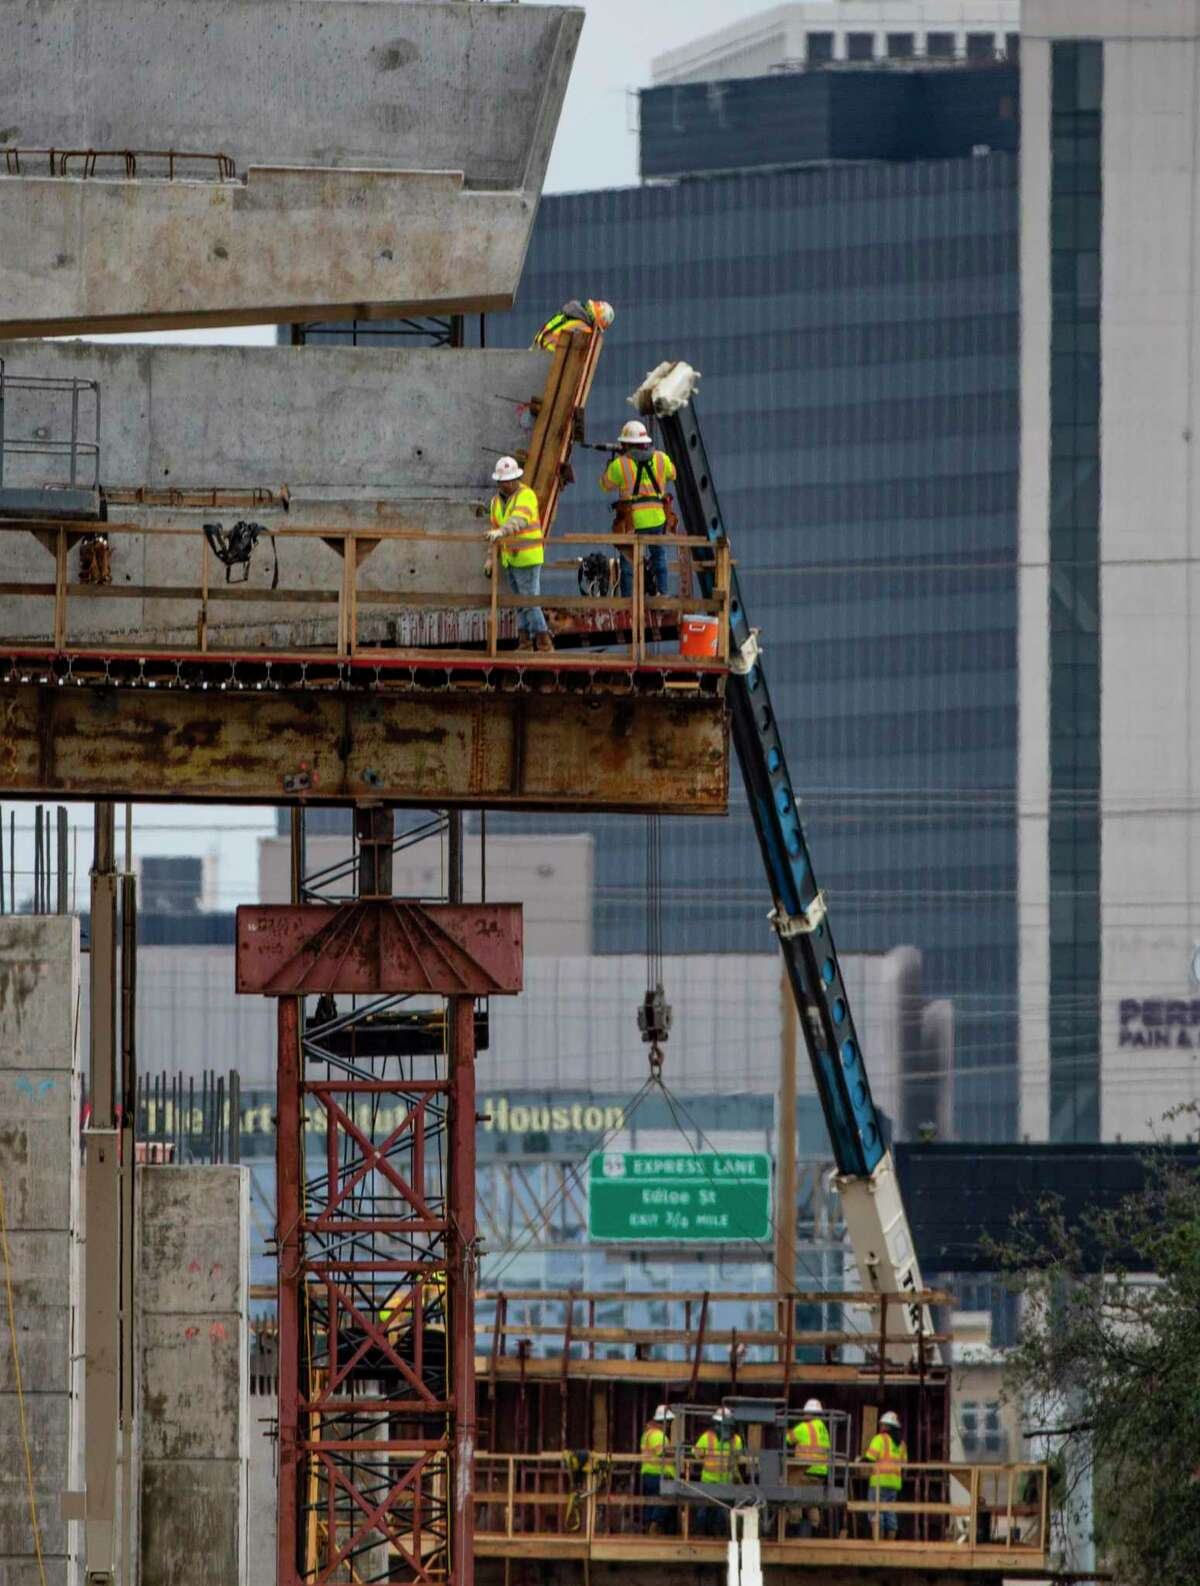 Work continues on pylons that will carry connectors between Loop 610 northbound and Interstate 69 northbound on Jan. 29, 2020, in Houston.